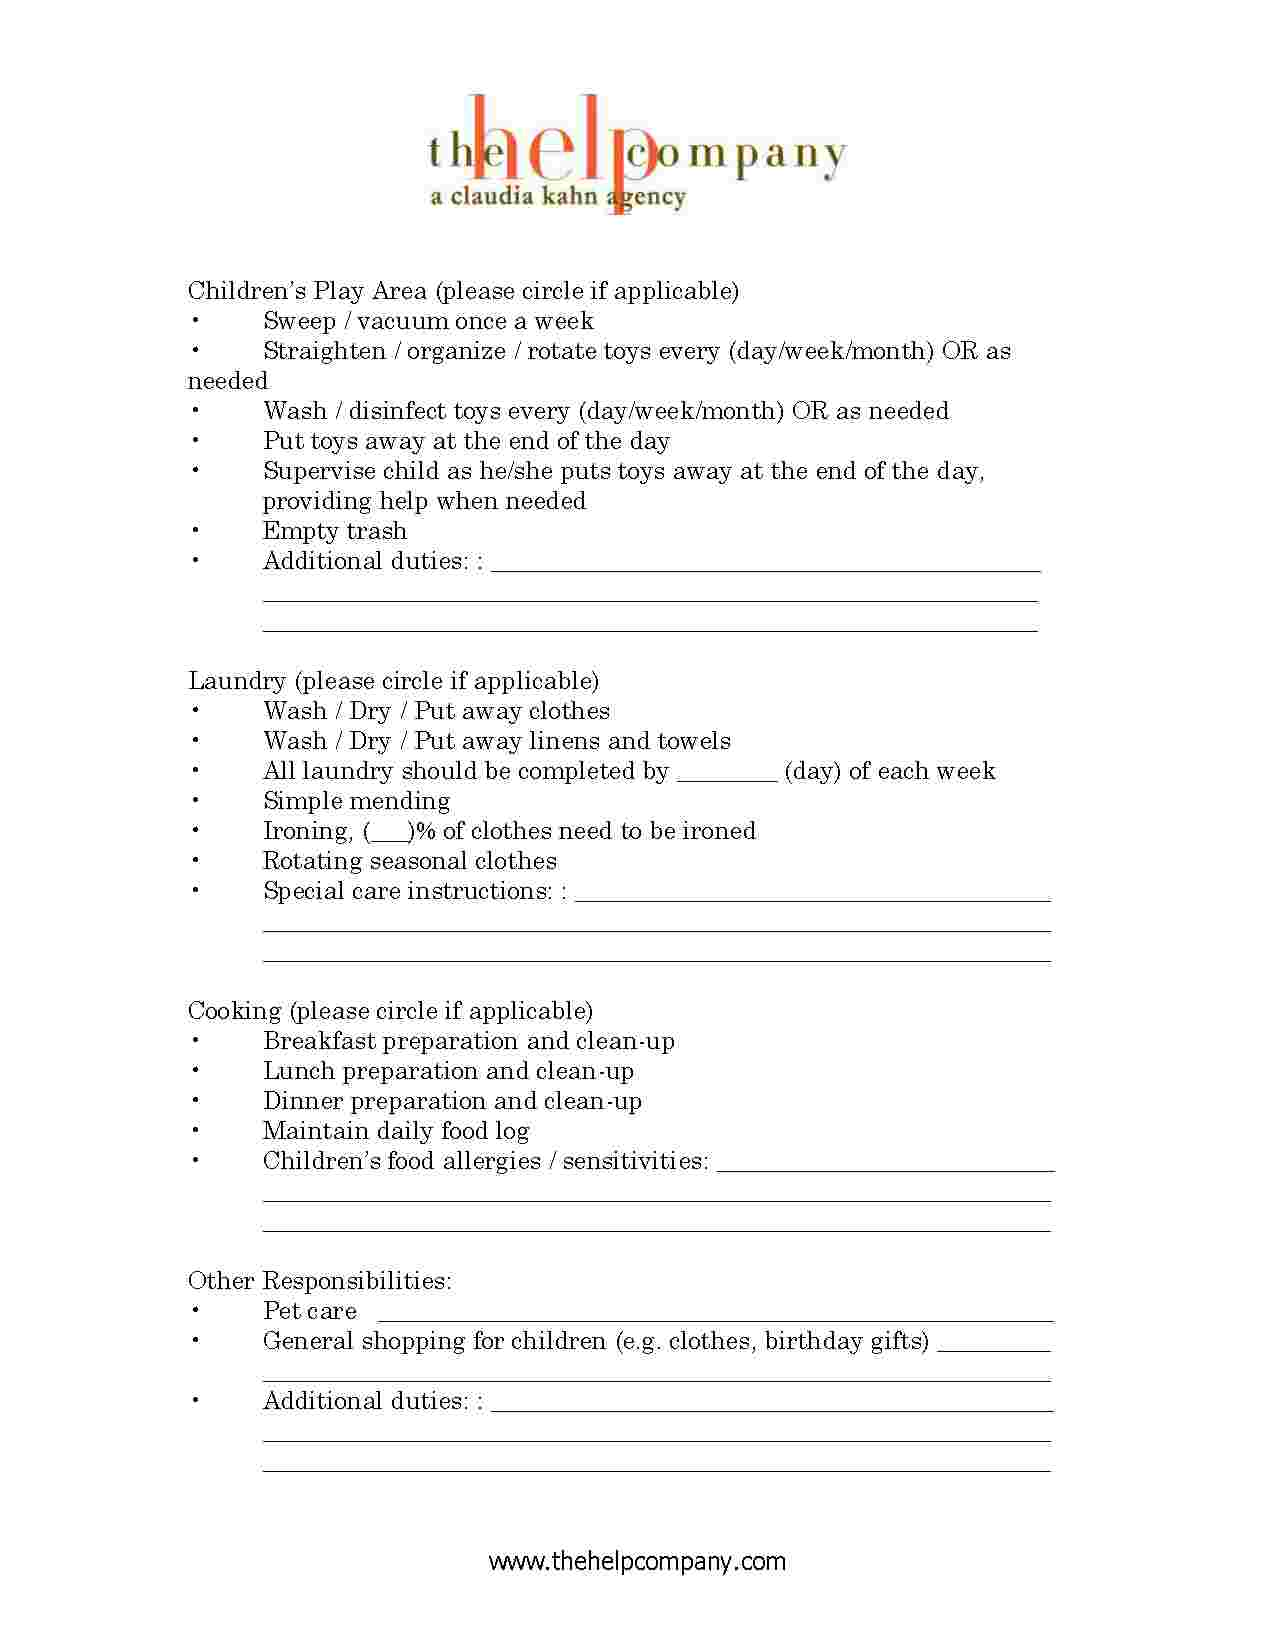 Employment Agreement Template Free Download